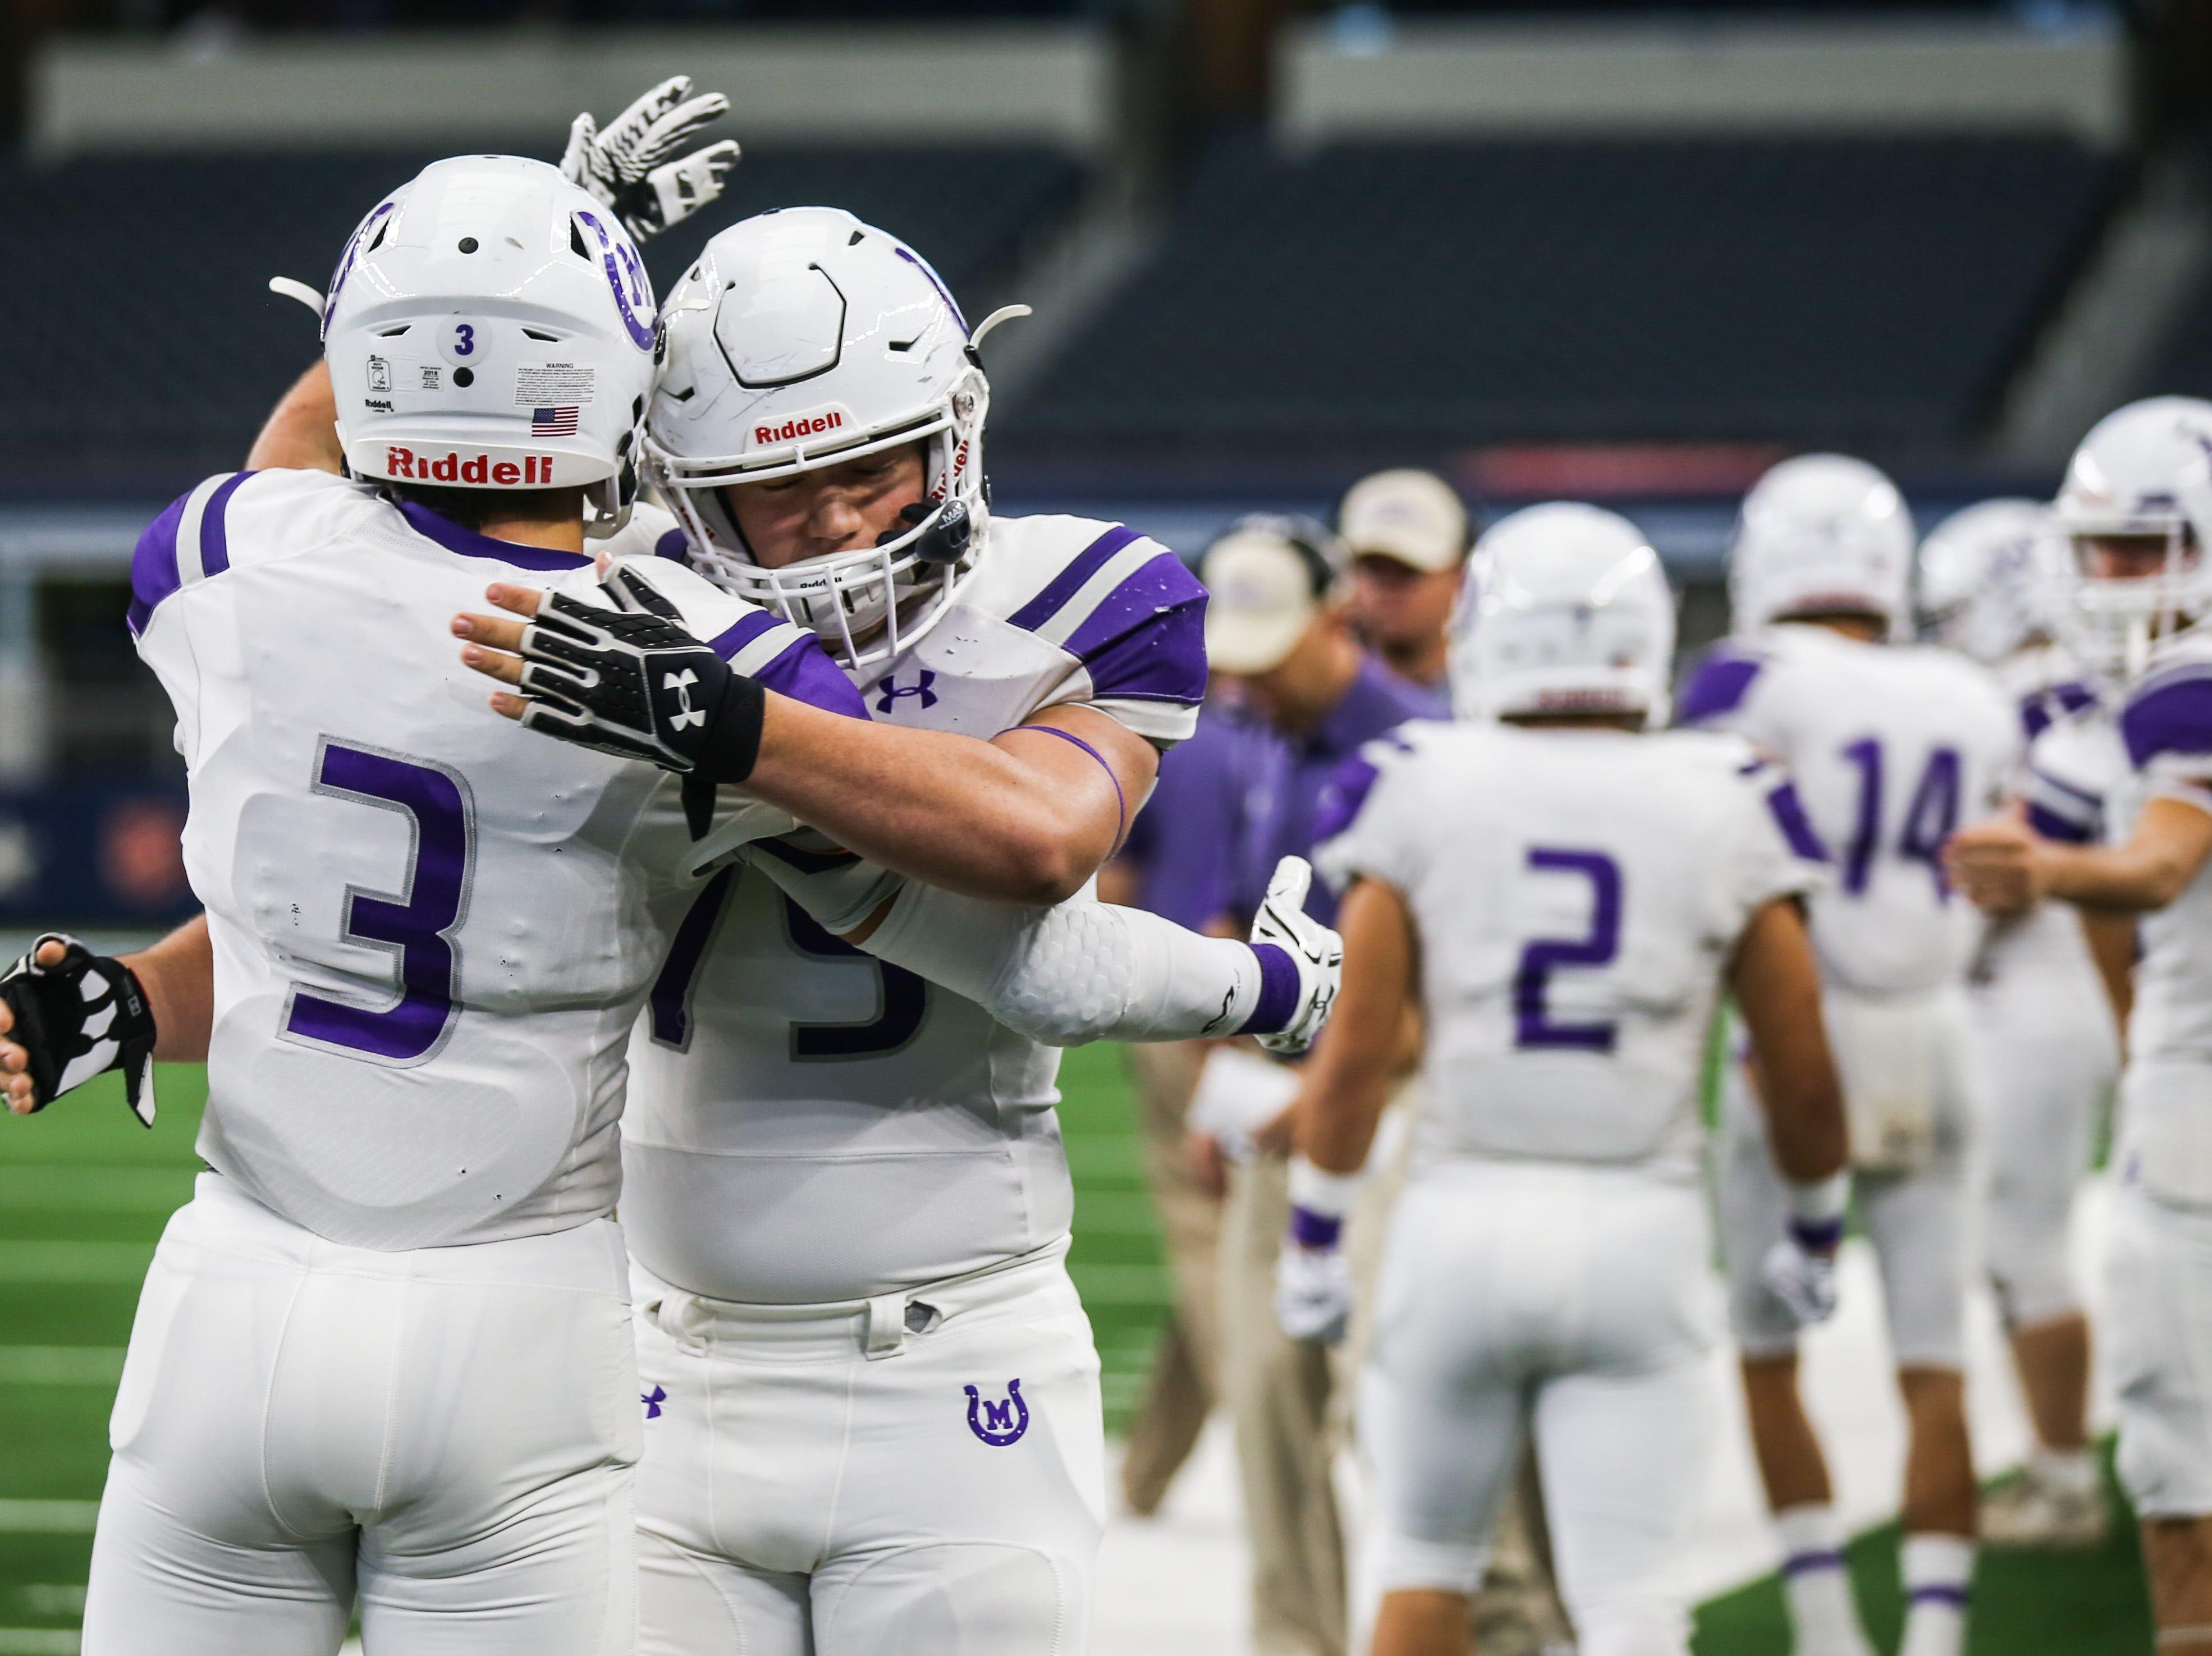 Mason players cheer each other on before the state finals game against New Deal Thursday, Dec. 20, at the AT&T Stadium.